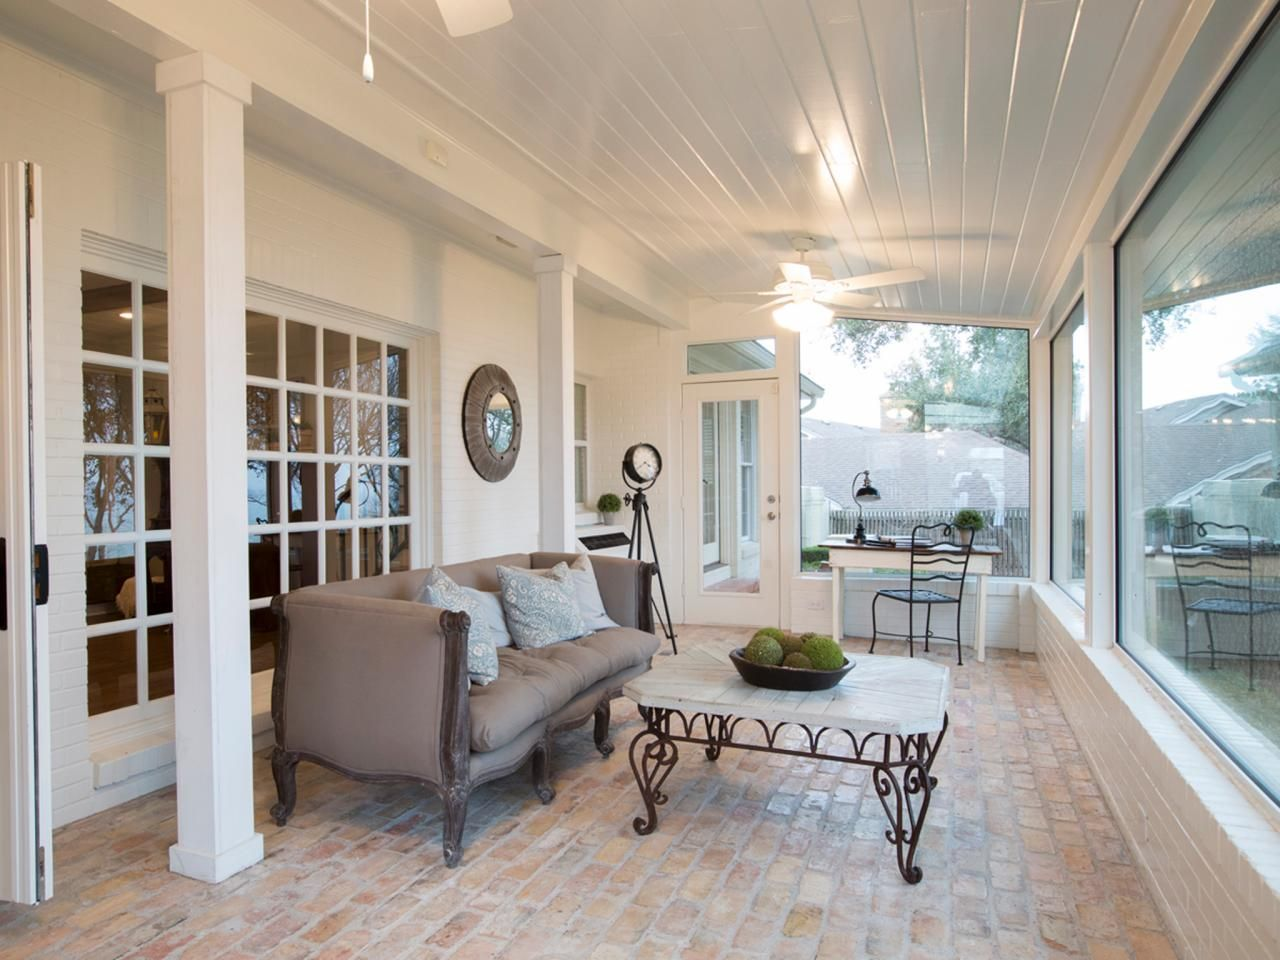 French Country Joanna Gaines Living Room Creating French Country In The Texas Suburbs Home